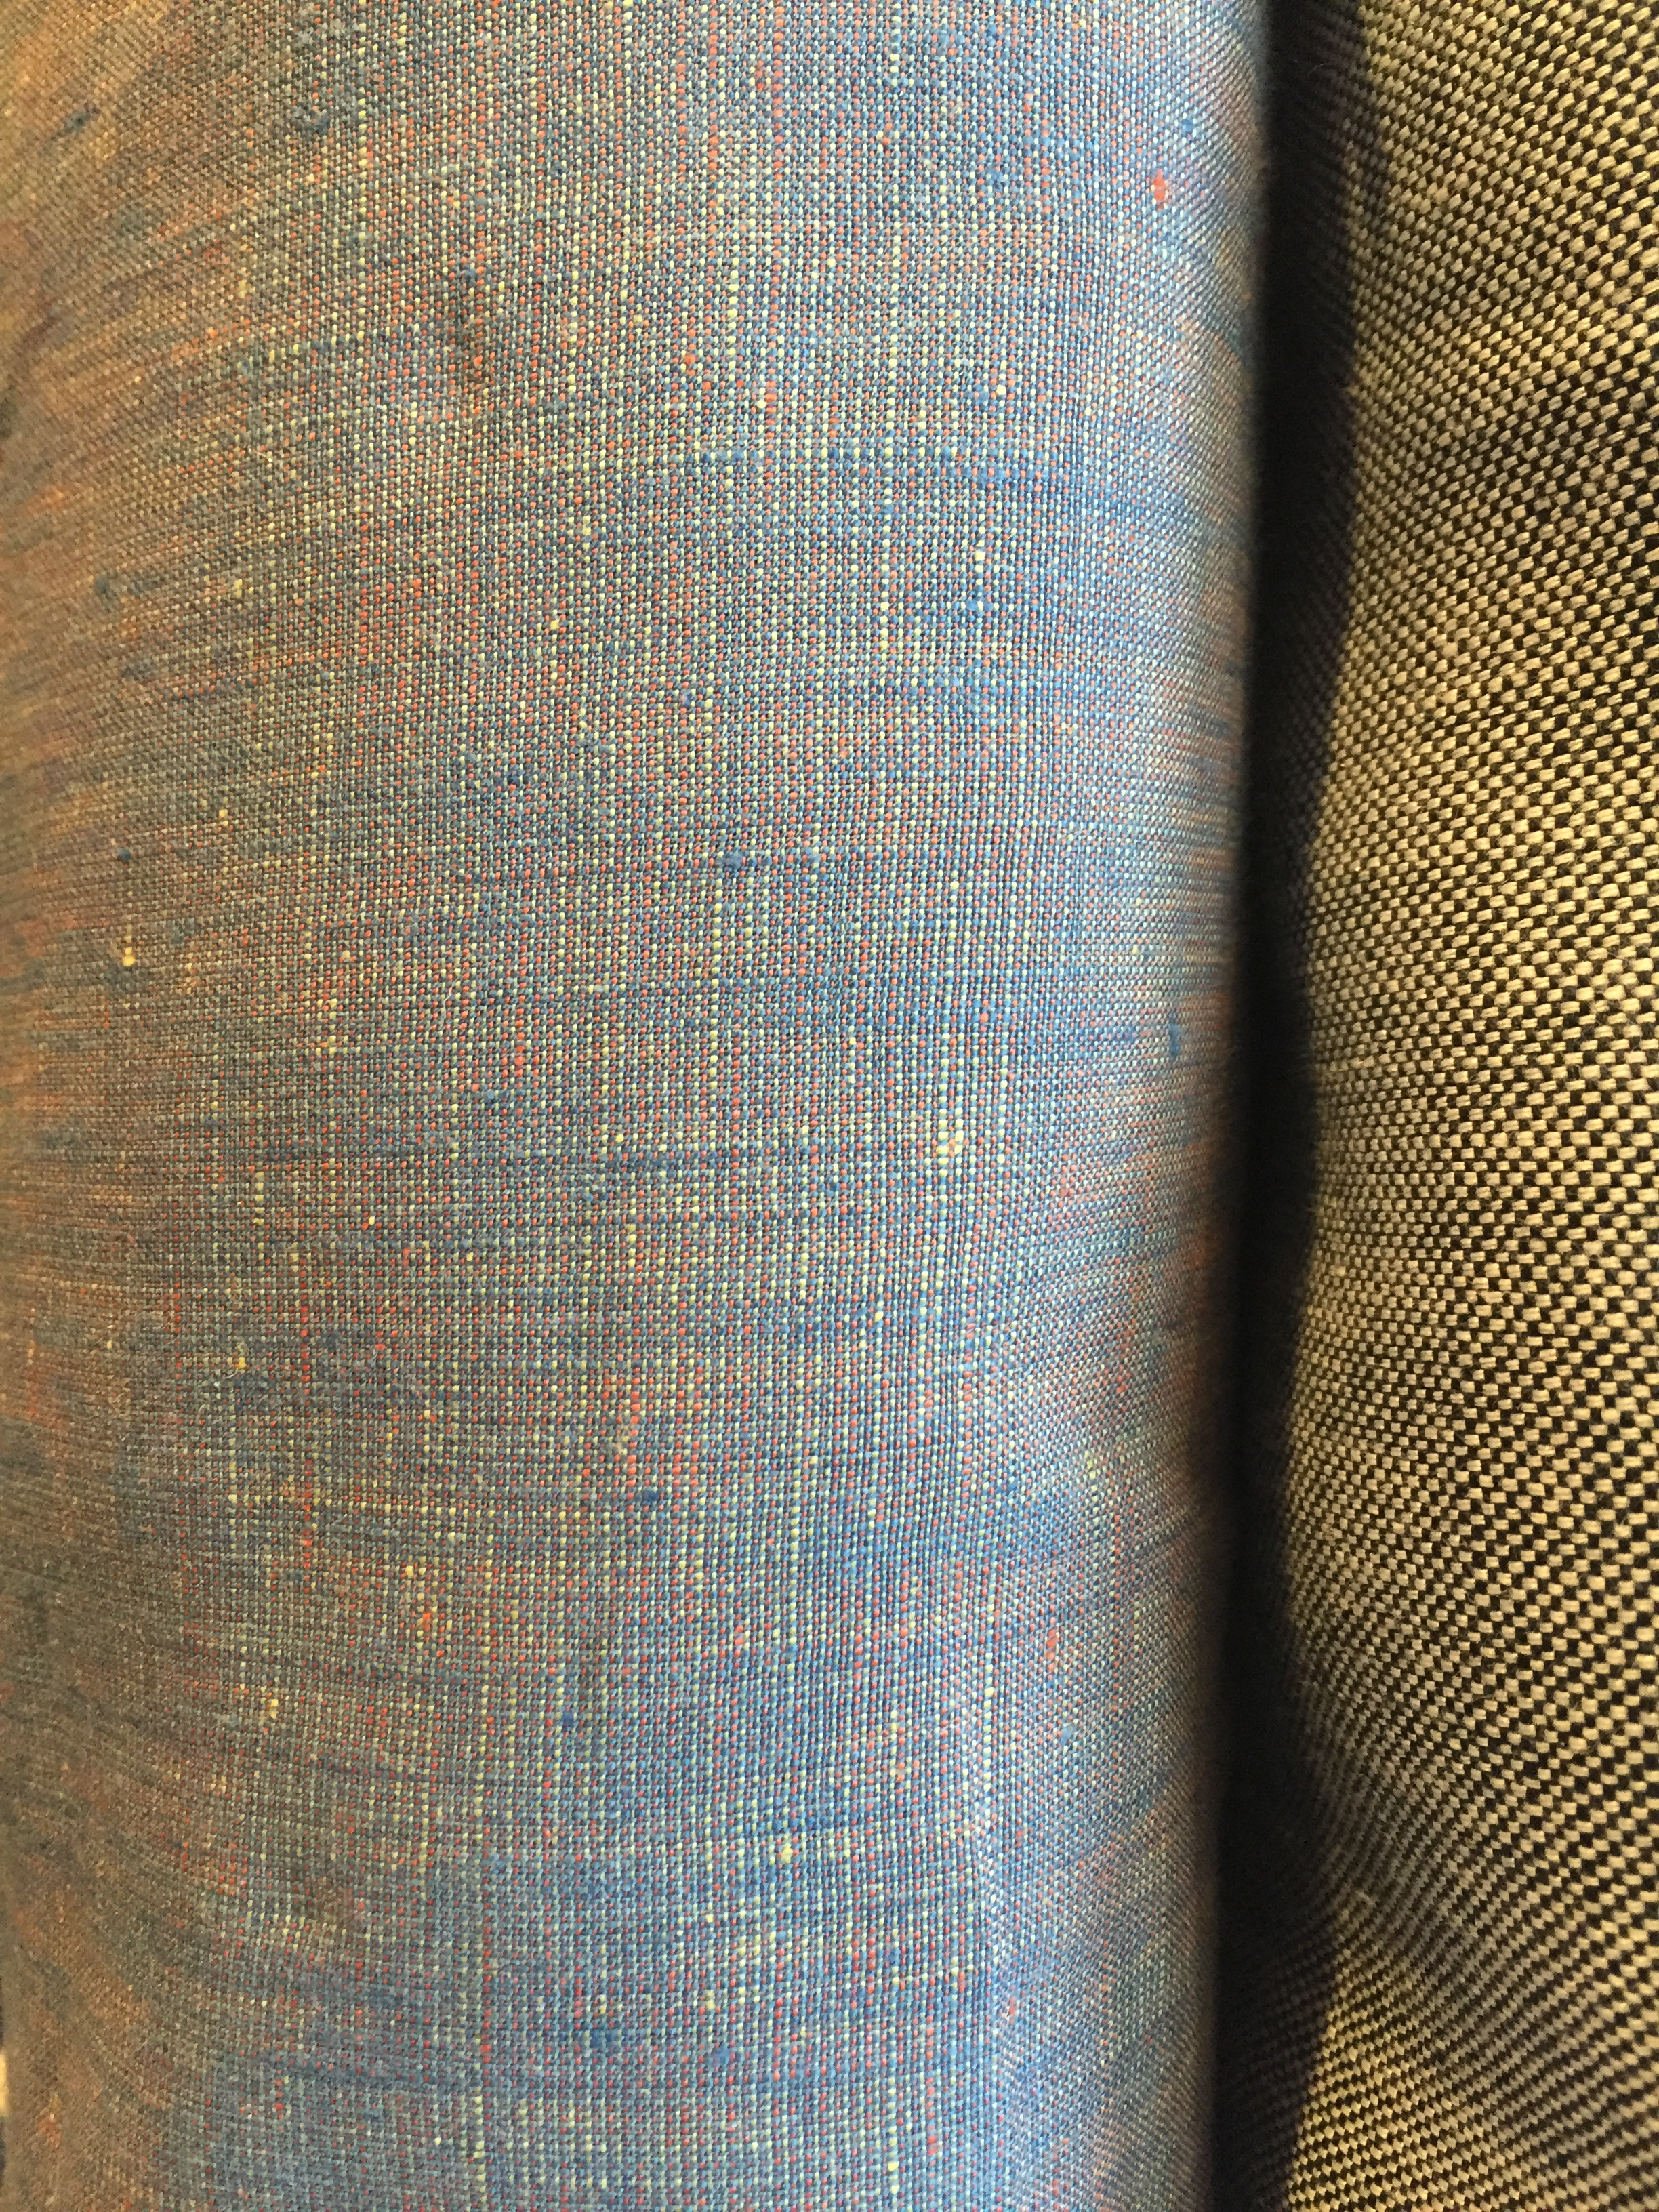 This multi-colored linen deserves a close up!